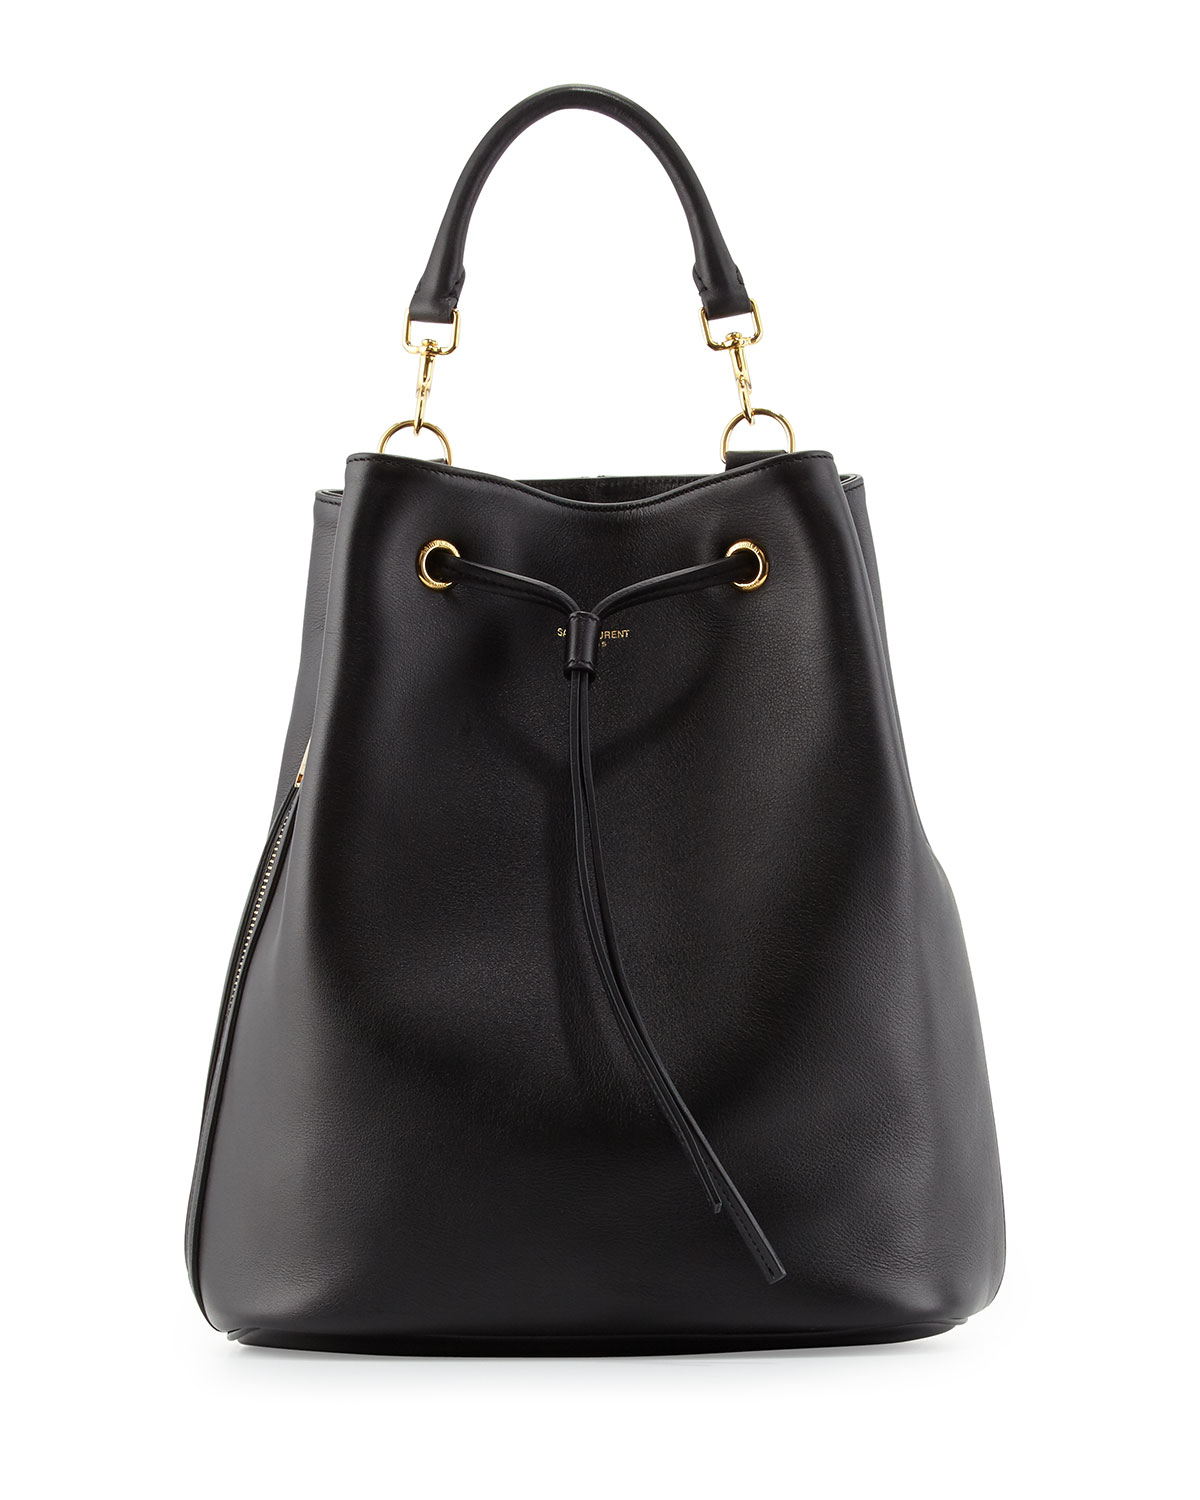 Saint laurent Leather Medium Drawstring Backpack in Black | Lyst